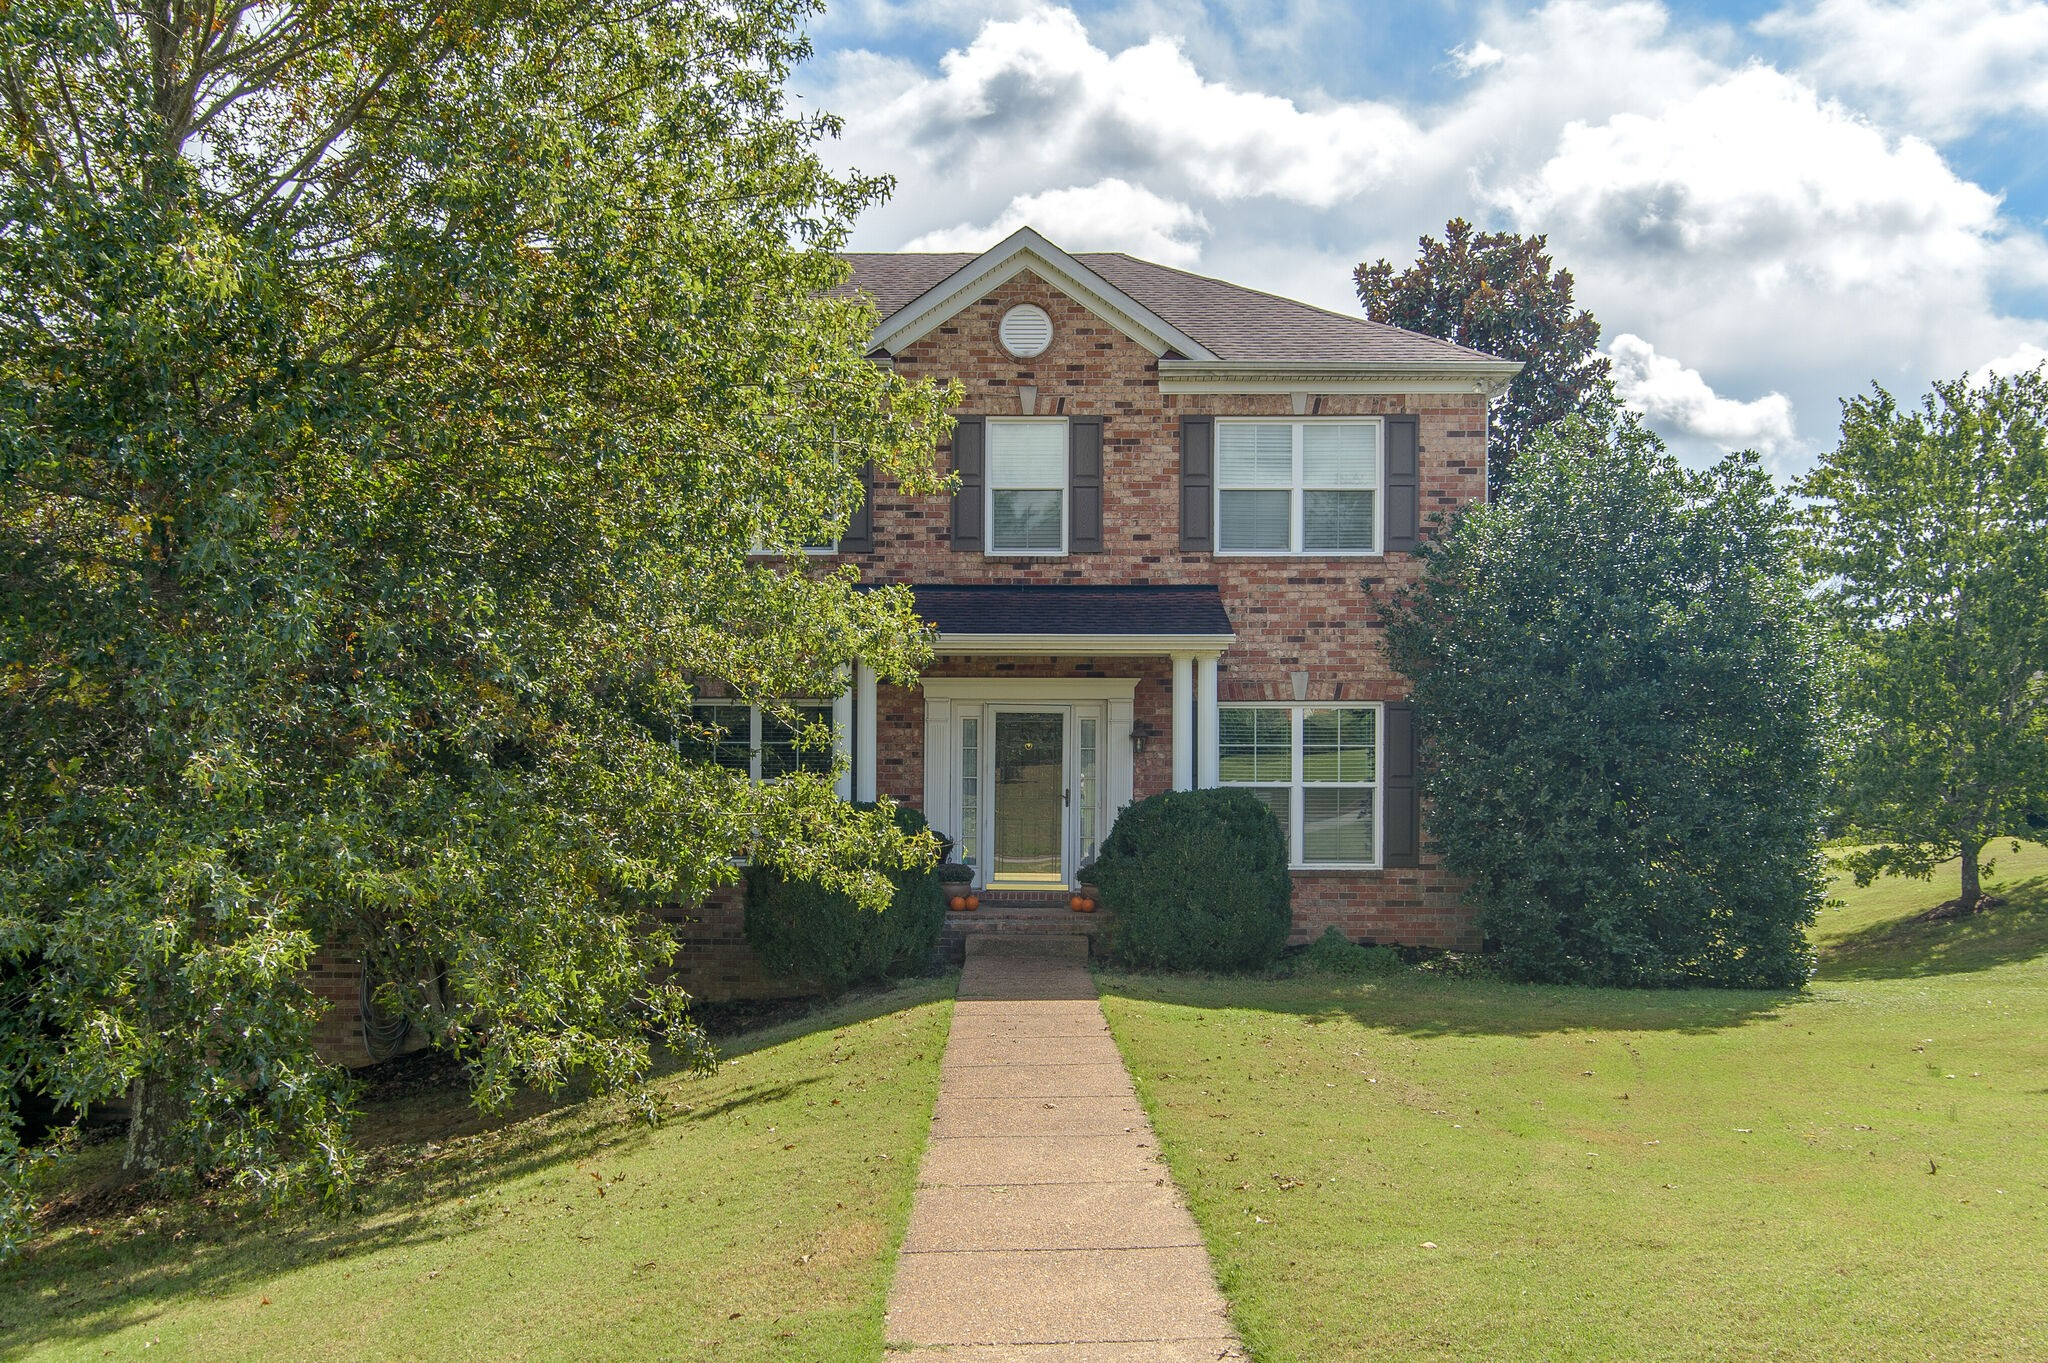 7937 Meadow View Dr Property Photo - Nashville, TN real estate listing